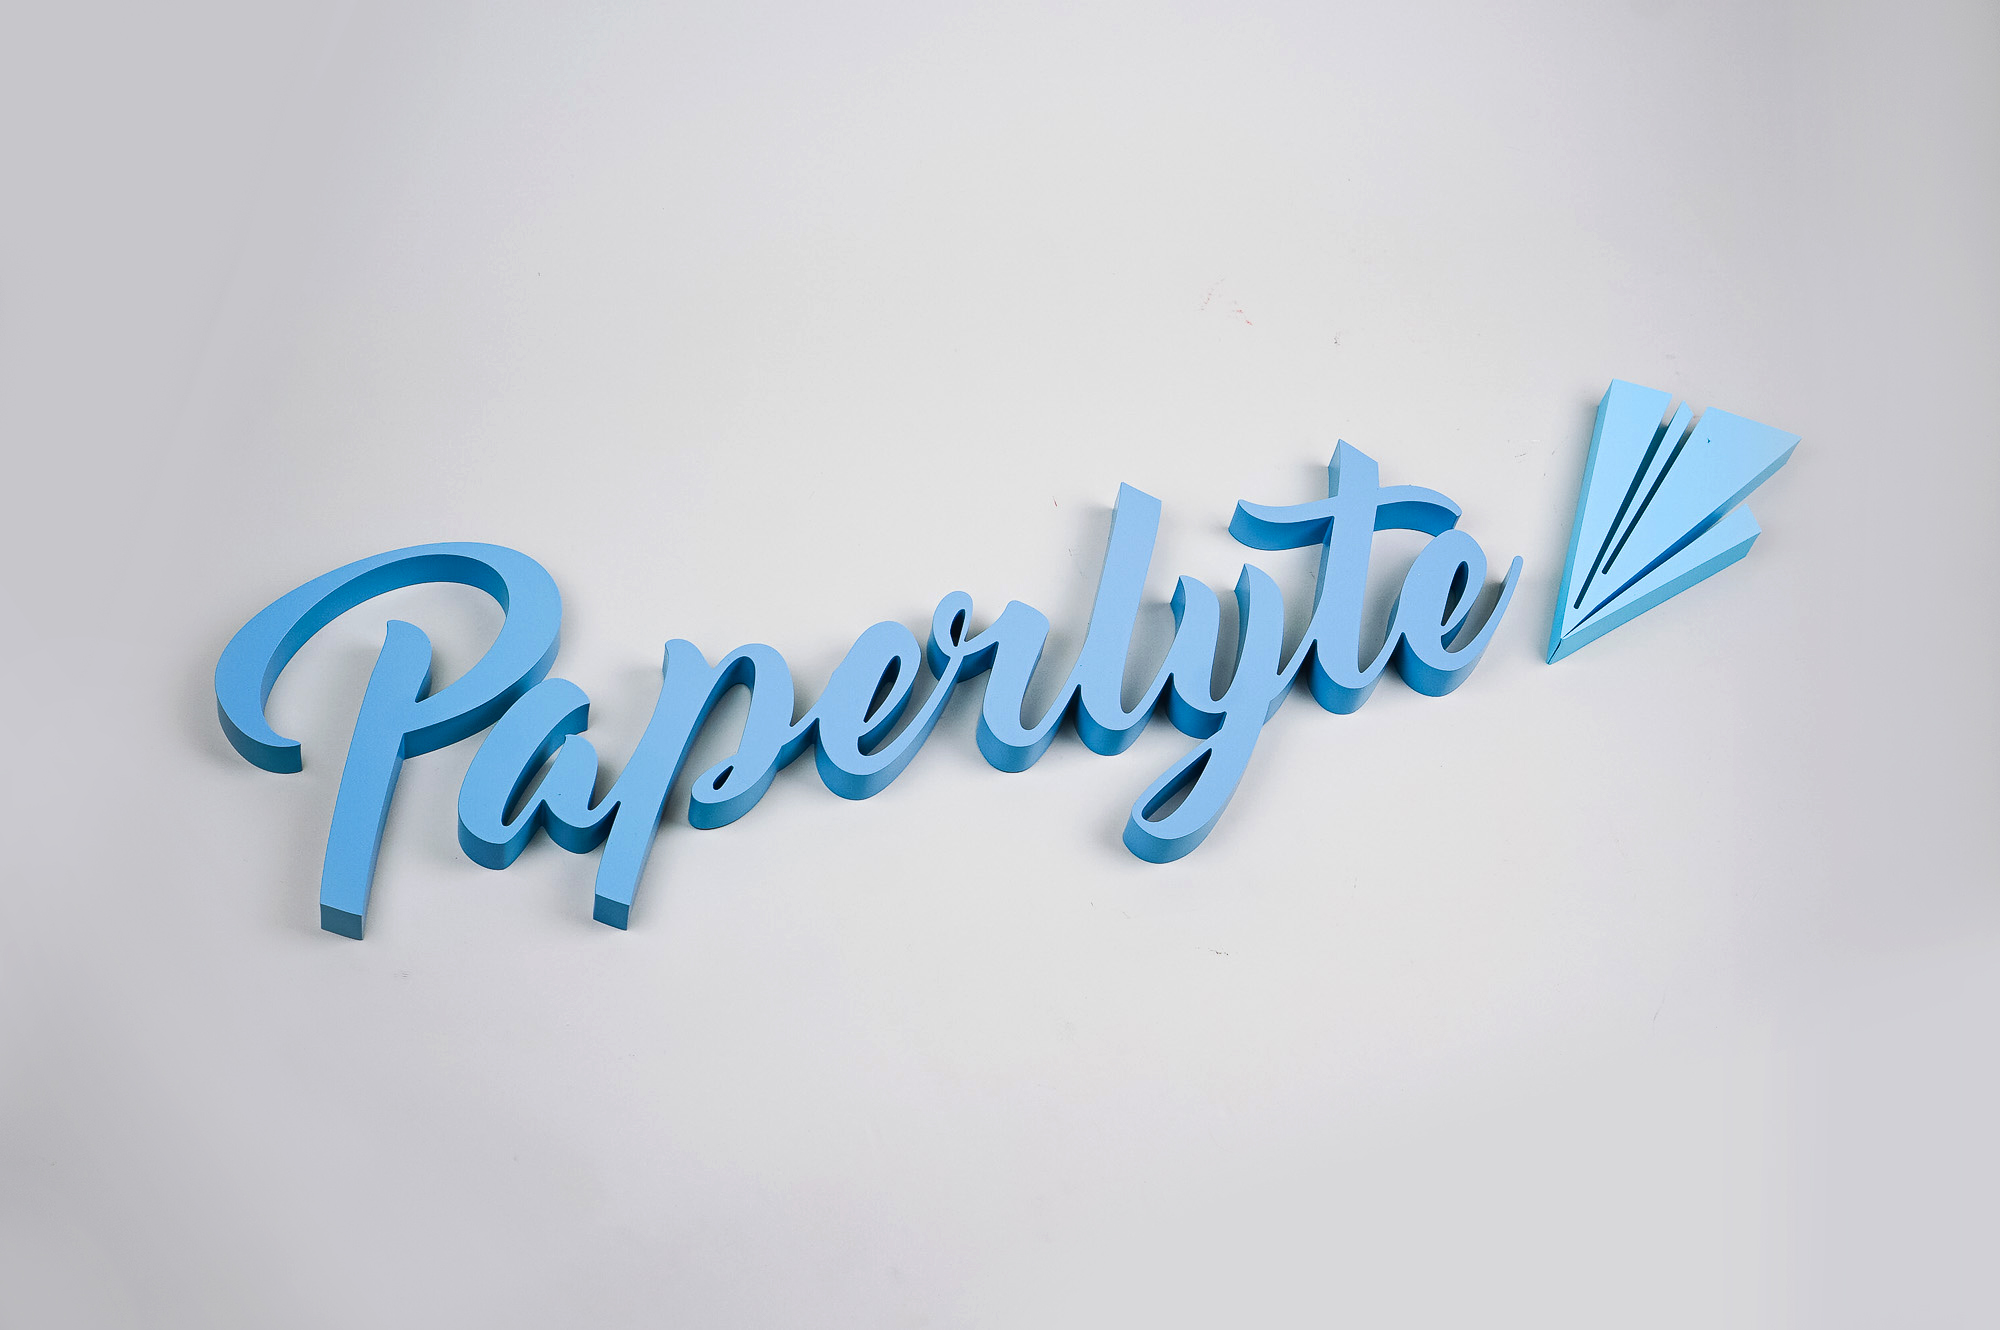 Blue dimensional script sign for Paperlyte, a media production company specializing in live streaming, video, documentary, and commercial content.